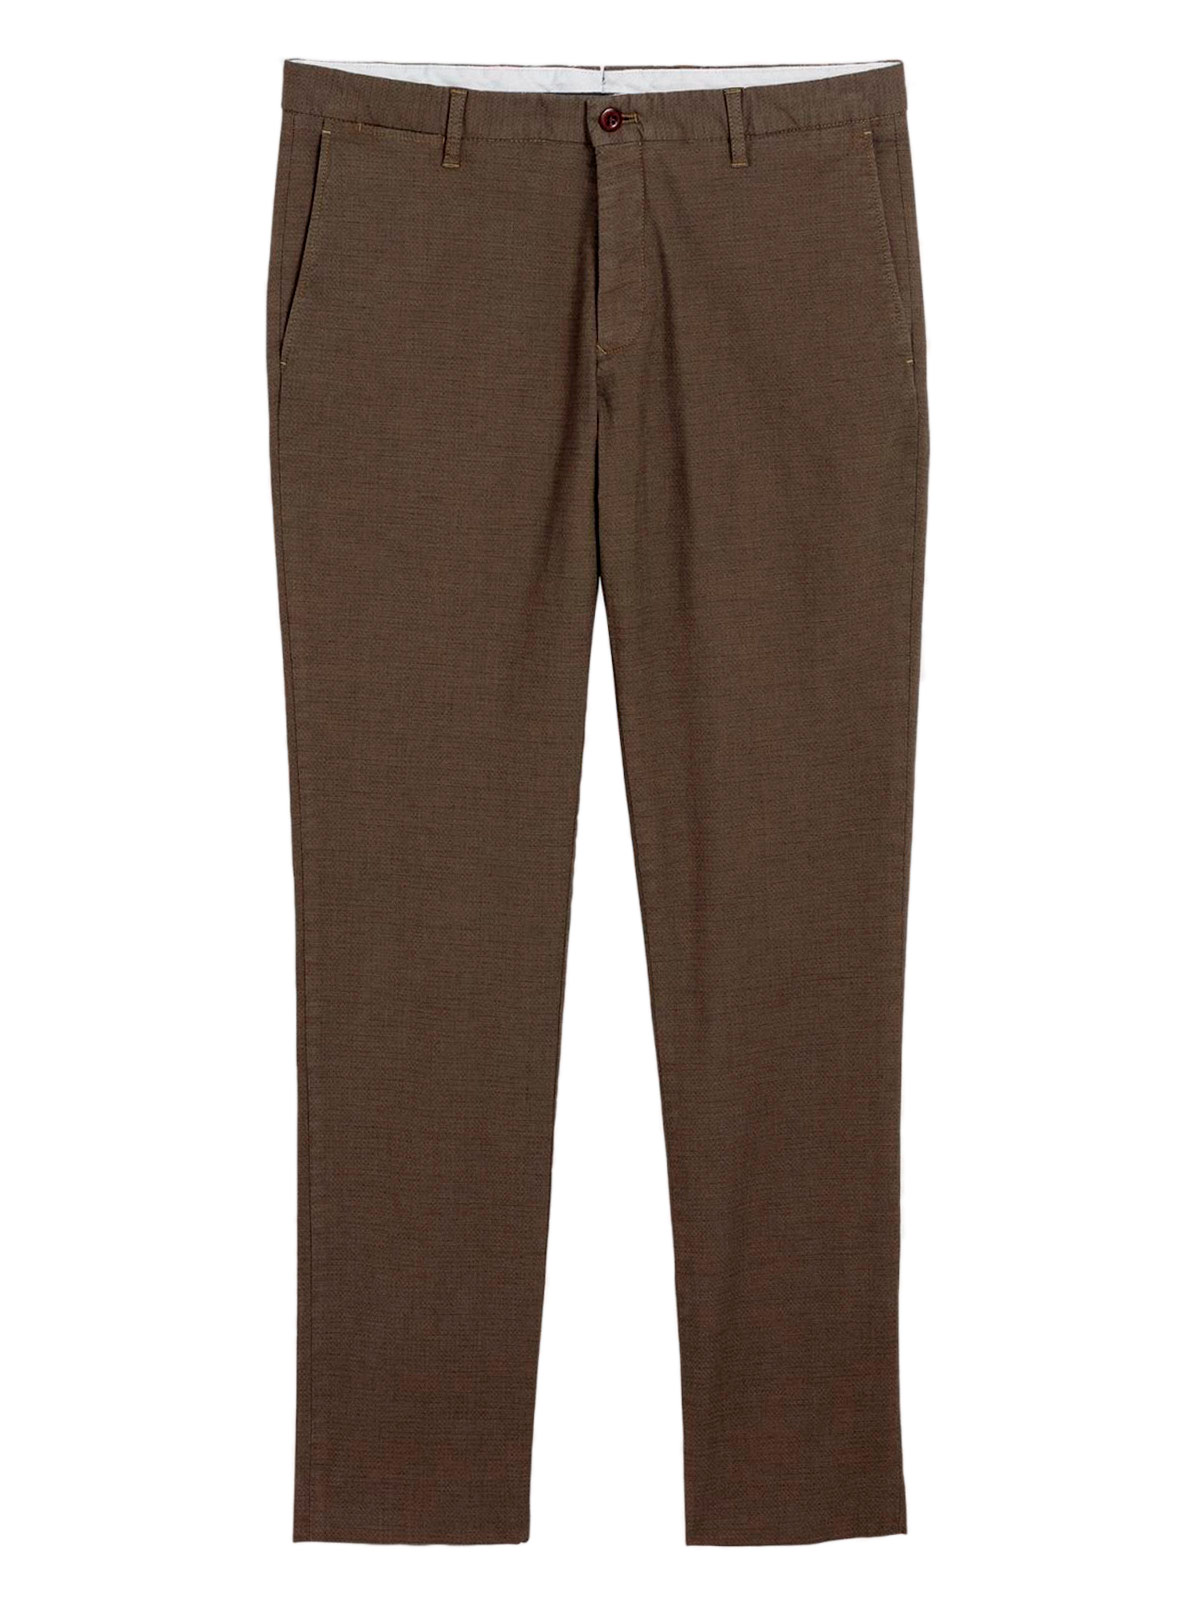 Picture of GANT | TROUSERS O1. THE SIGNATURE WEAVE SLACK